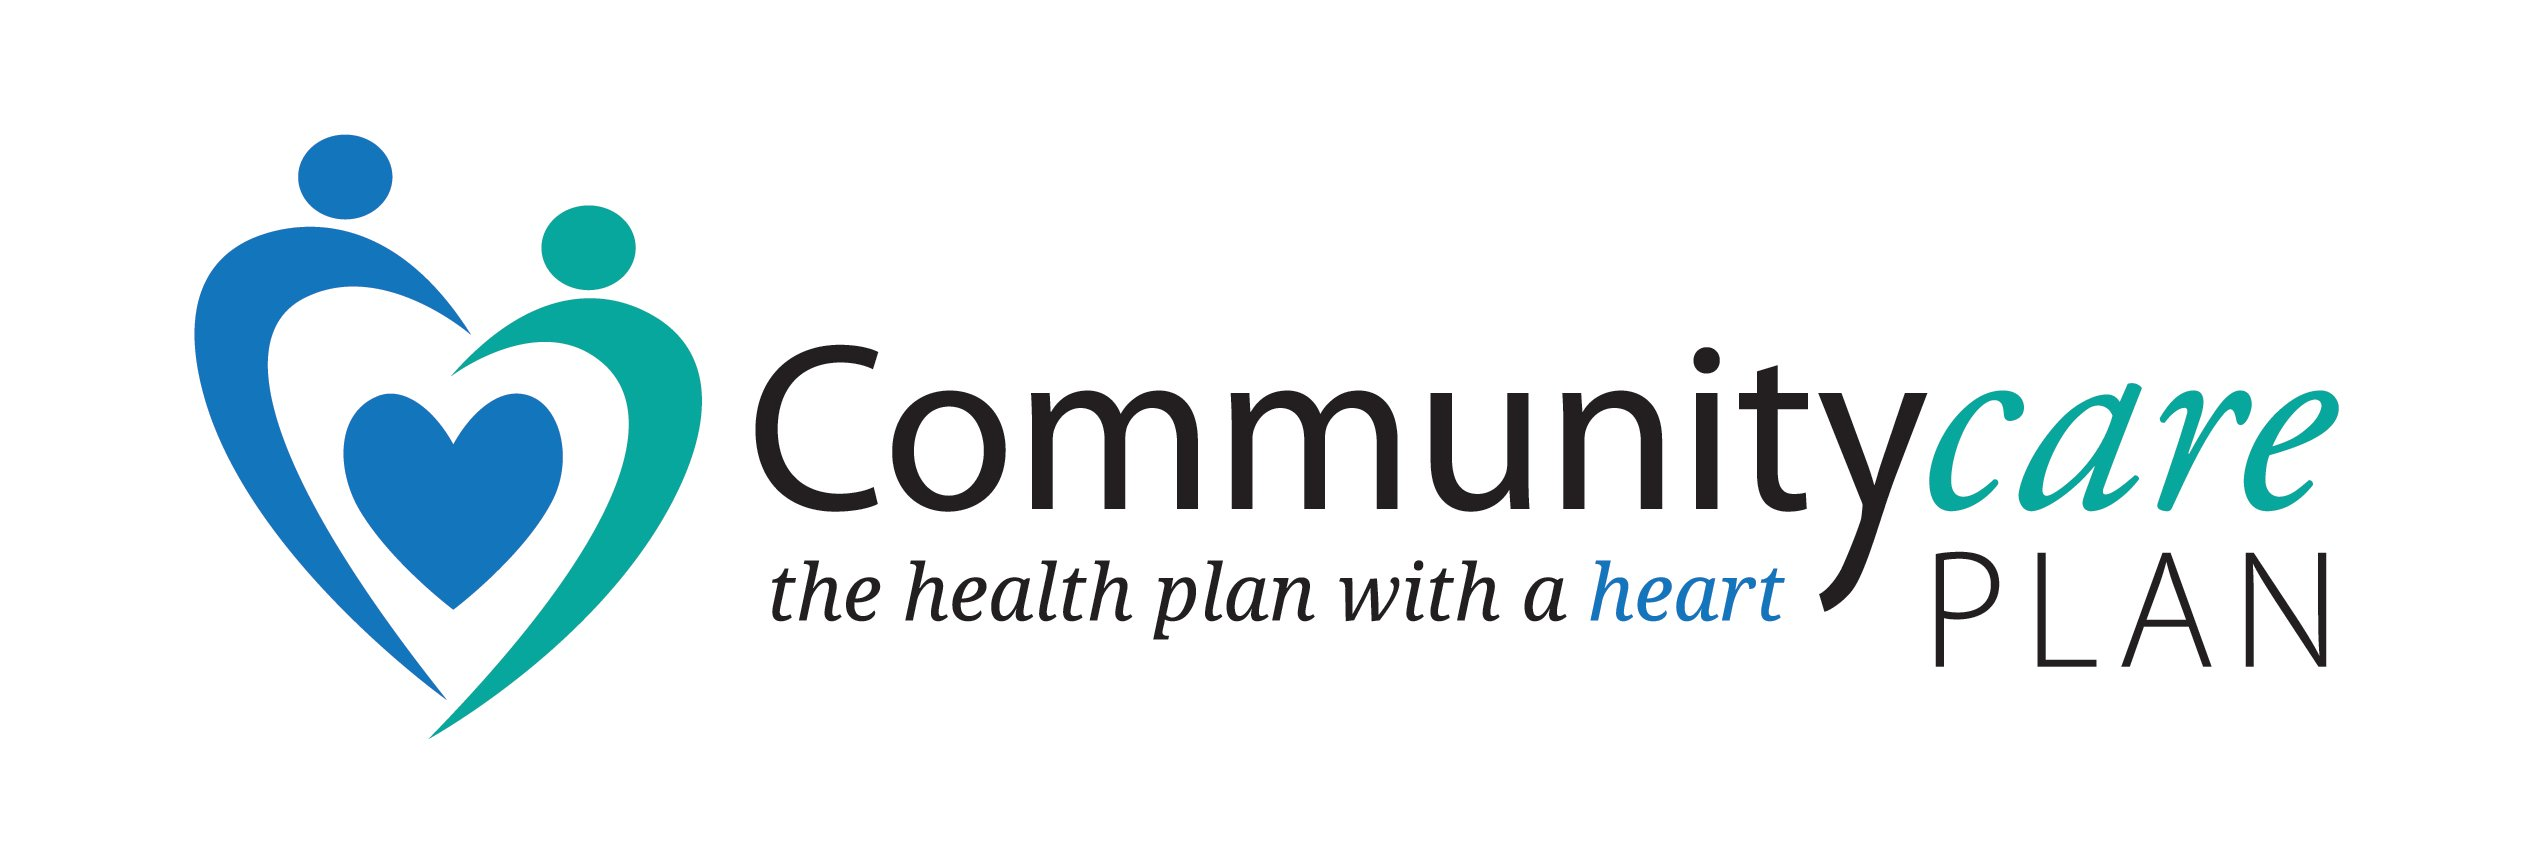 CareSignal · Community Care Plan and CareSignal Launch ...